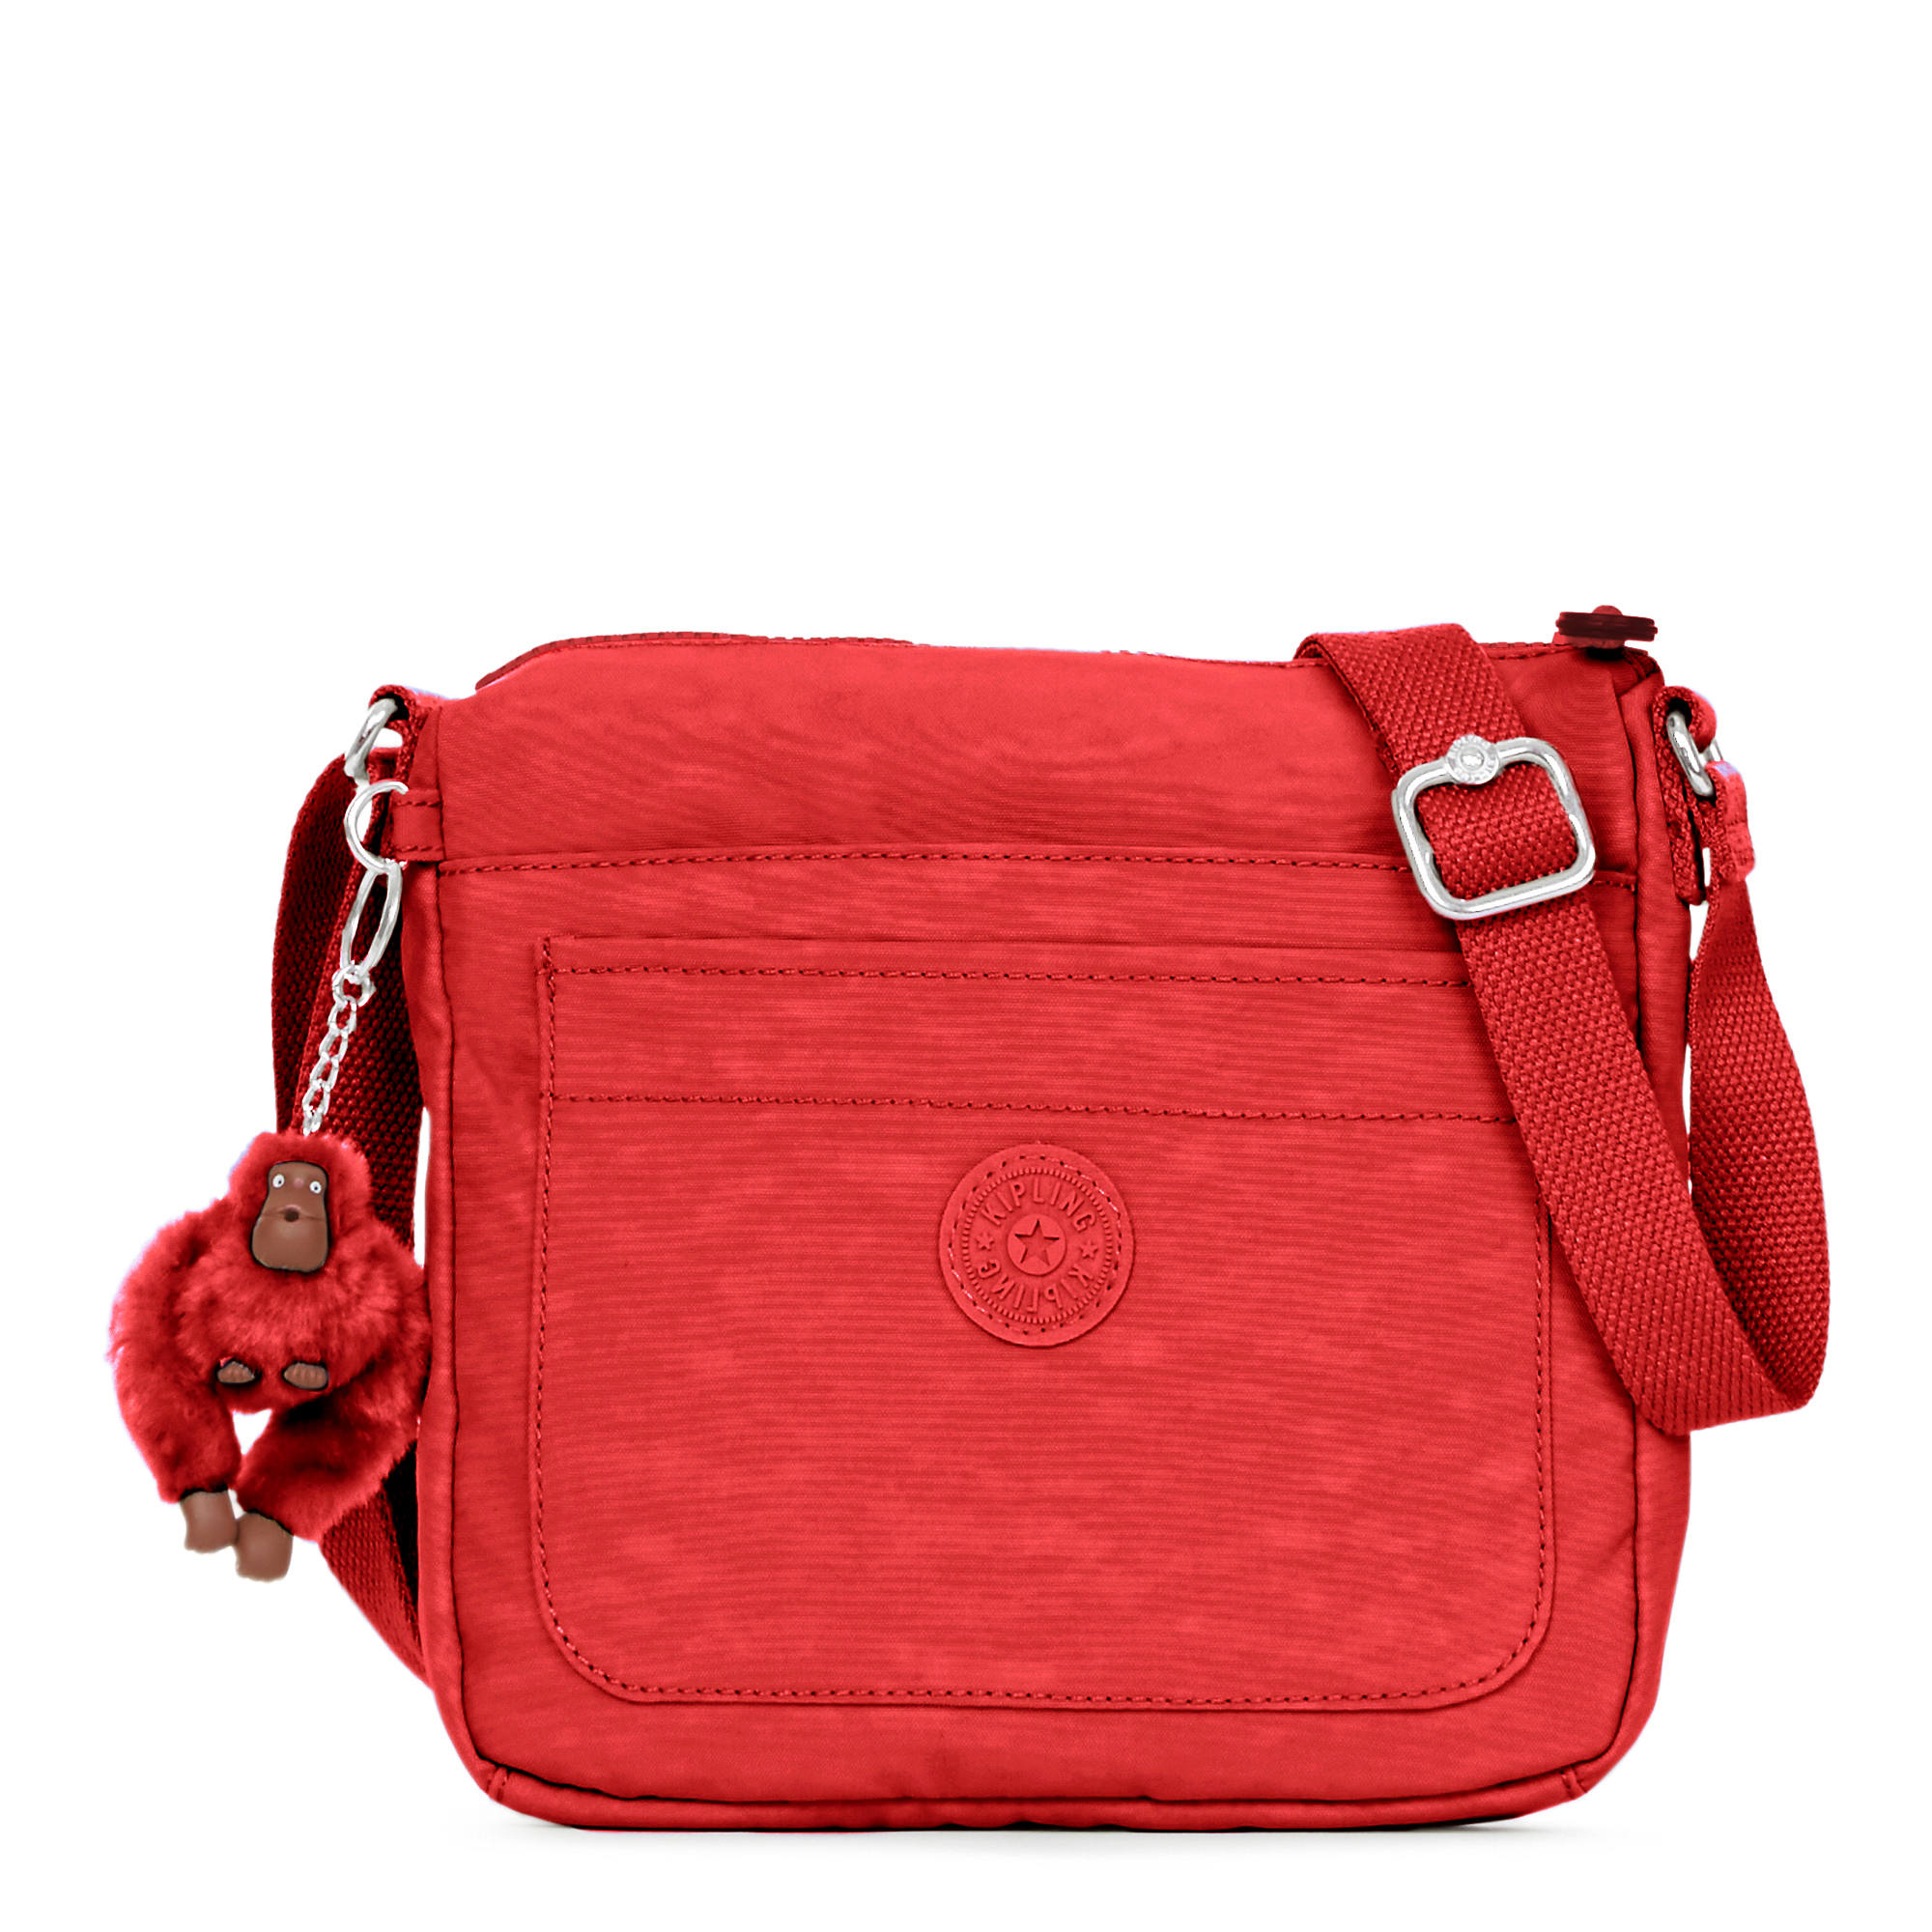 Sebastian Crossbody Bag Cherry T Large